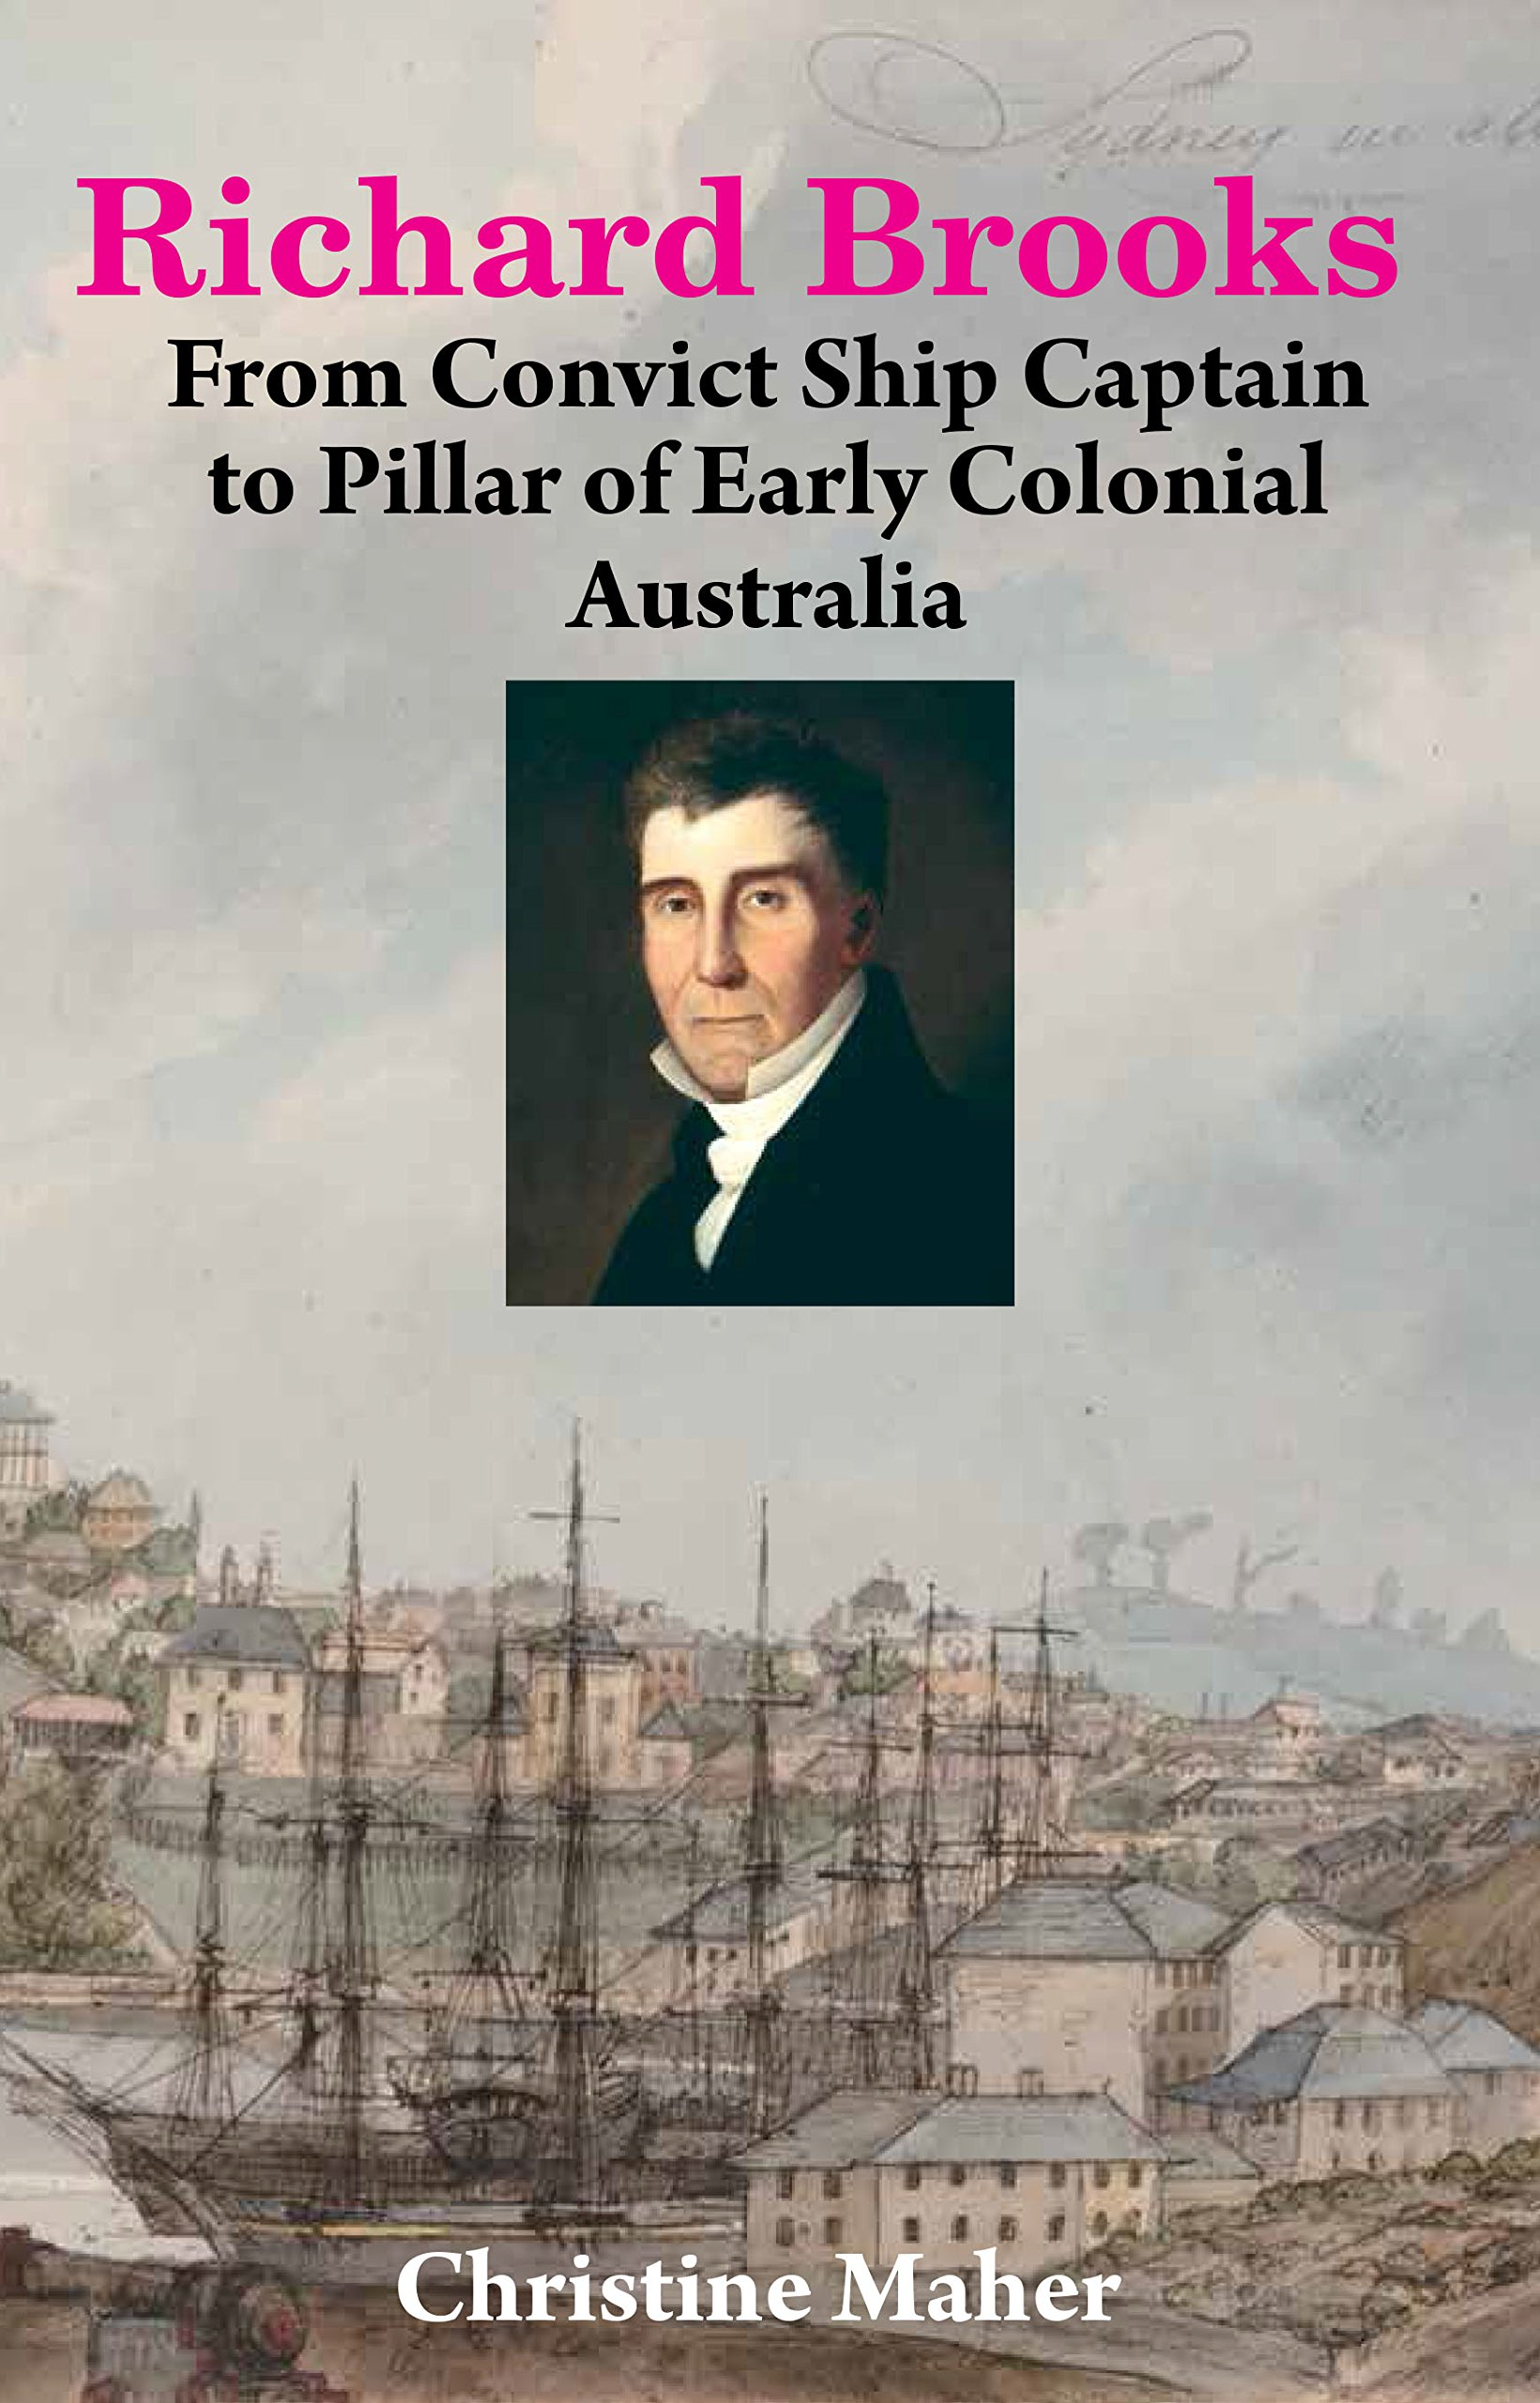 Richard Brooks: From Convict Ship Captain to Pillar of Early